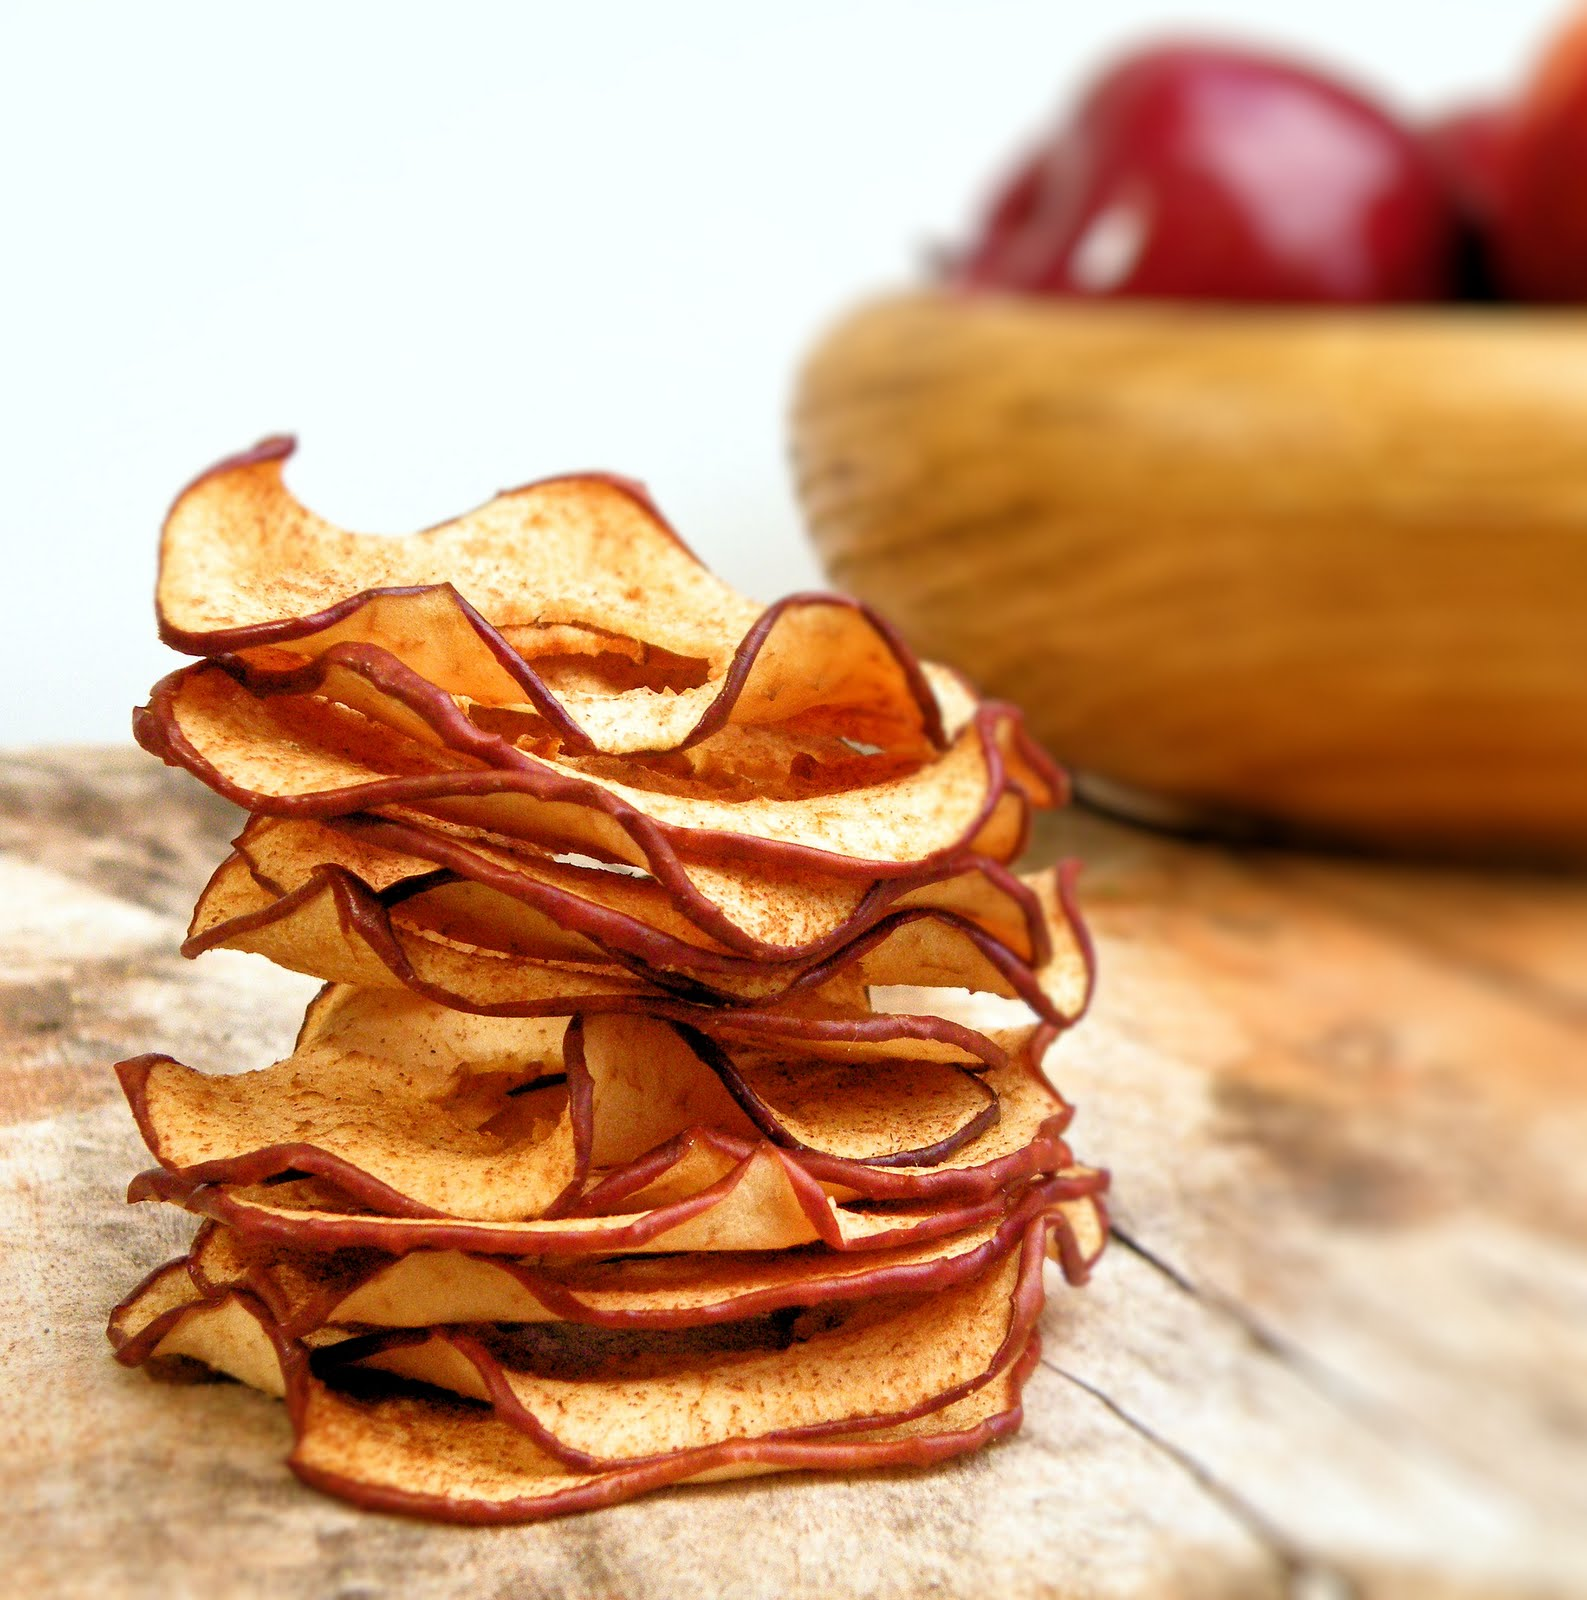 ... chips carrot chips potato chips paleo chips cinnamon baked apple chips